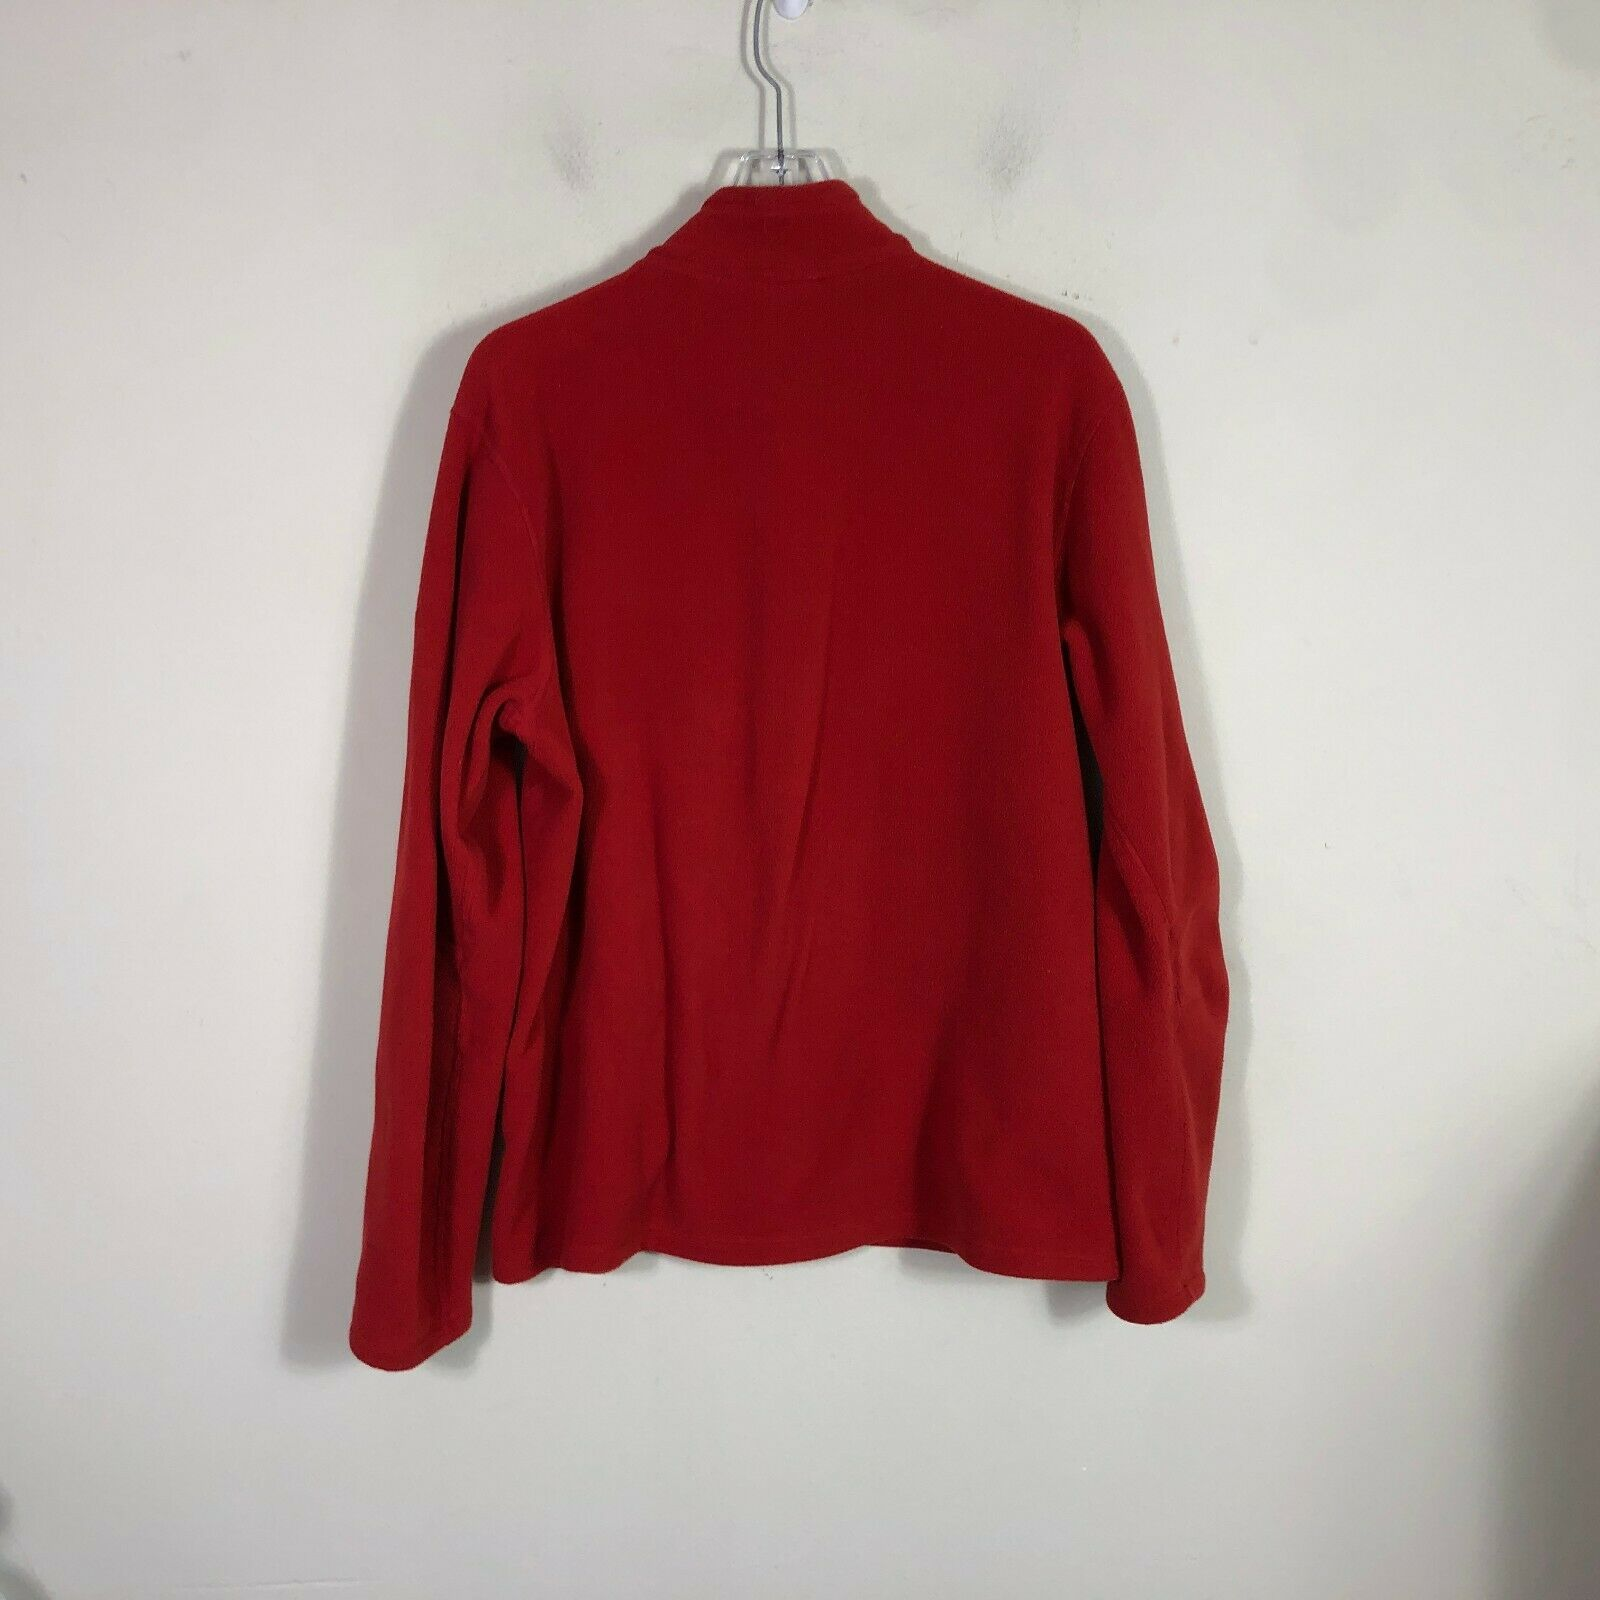 Eddie Bauer First Ascent Fleece Jacket Large Red Long Sleeve Pull Over 1/2 Zip image 9